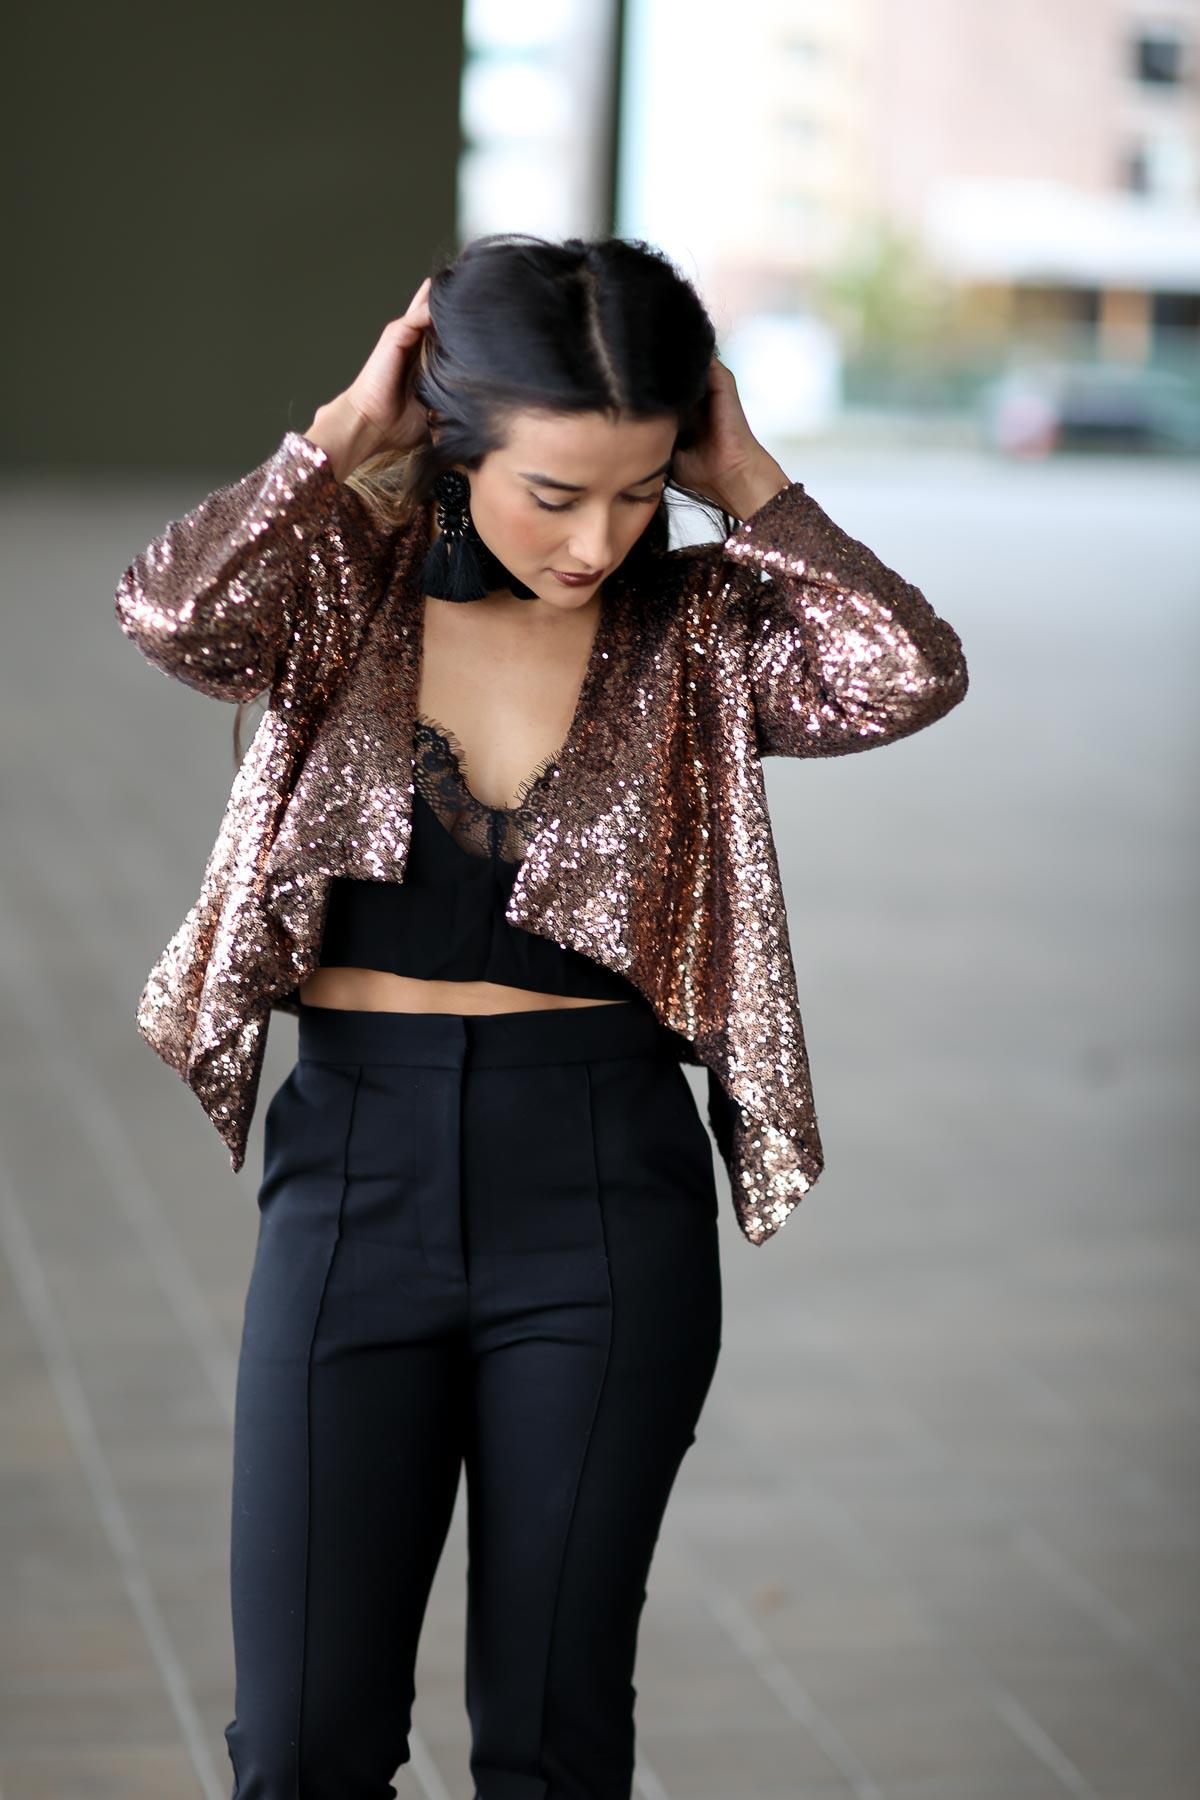 stiletto-confessions-shein-sequin-waterfall-blazer-23